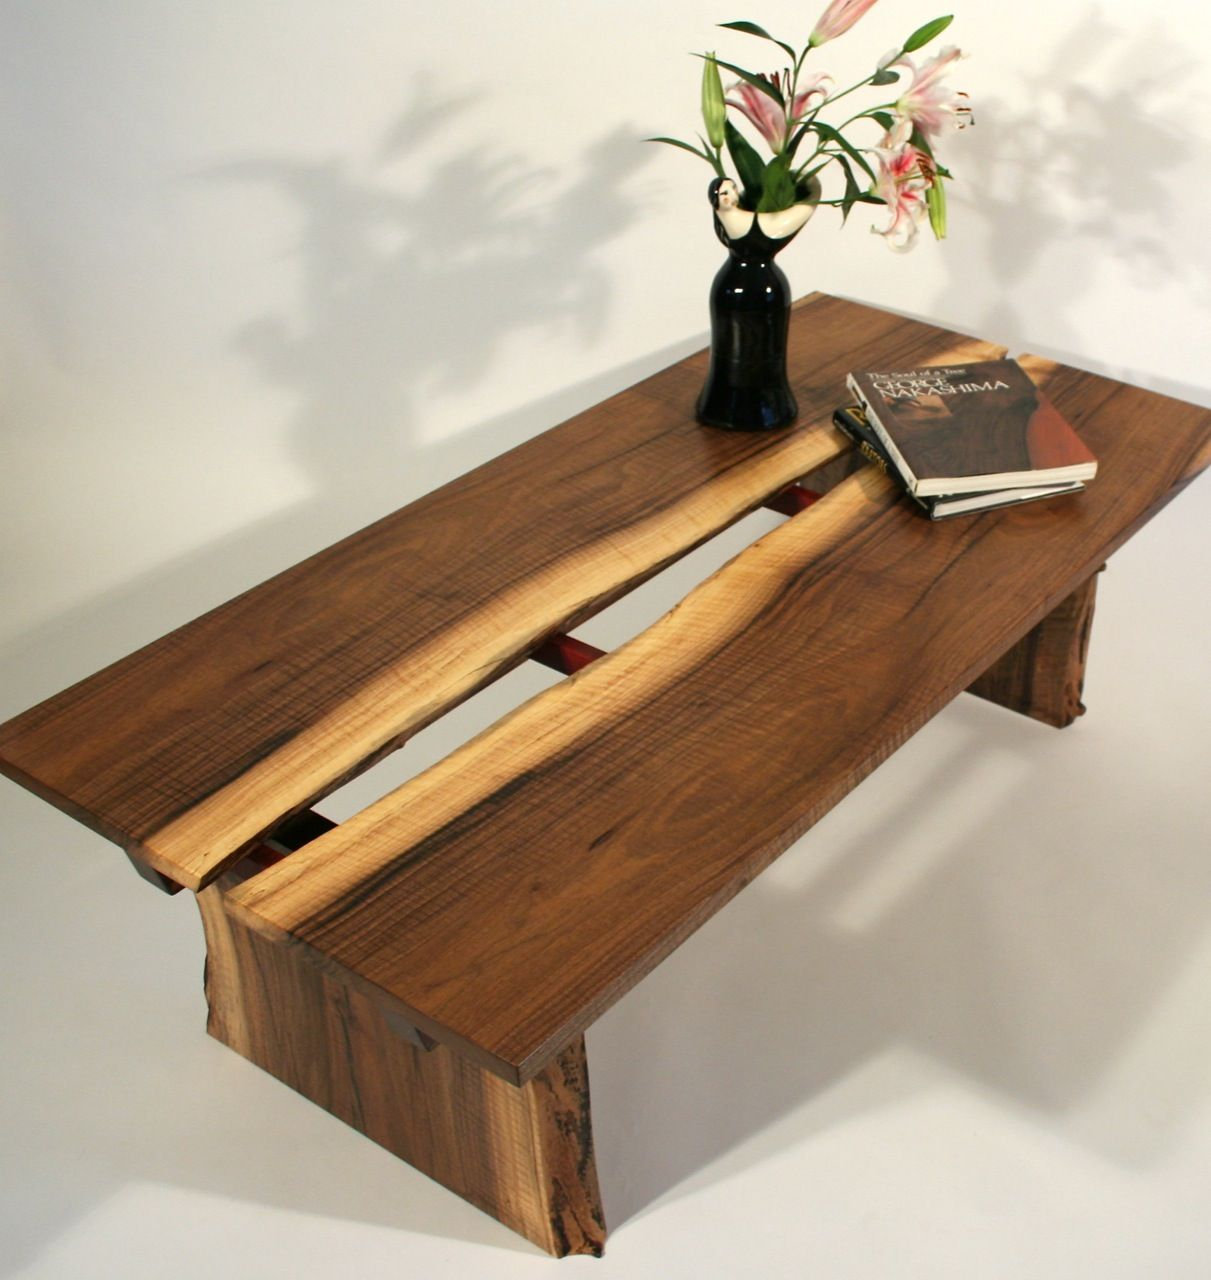 alive edge coffee table from timothy 39 s fine woodworking woodworking pinterest mobilier. Black Bedroom Furniture Sets. Home Design Ideas